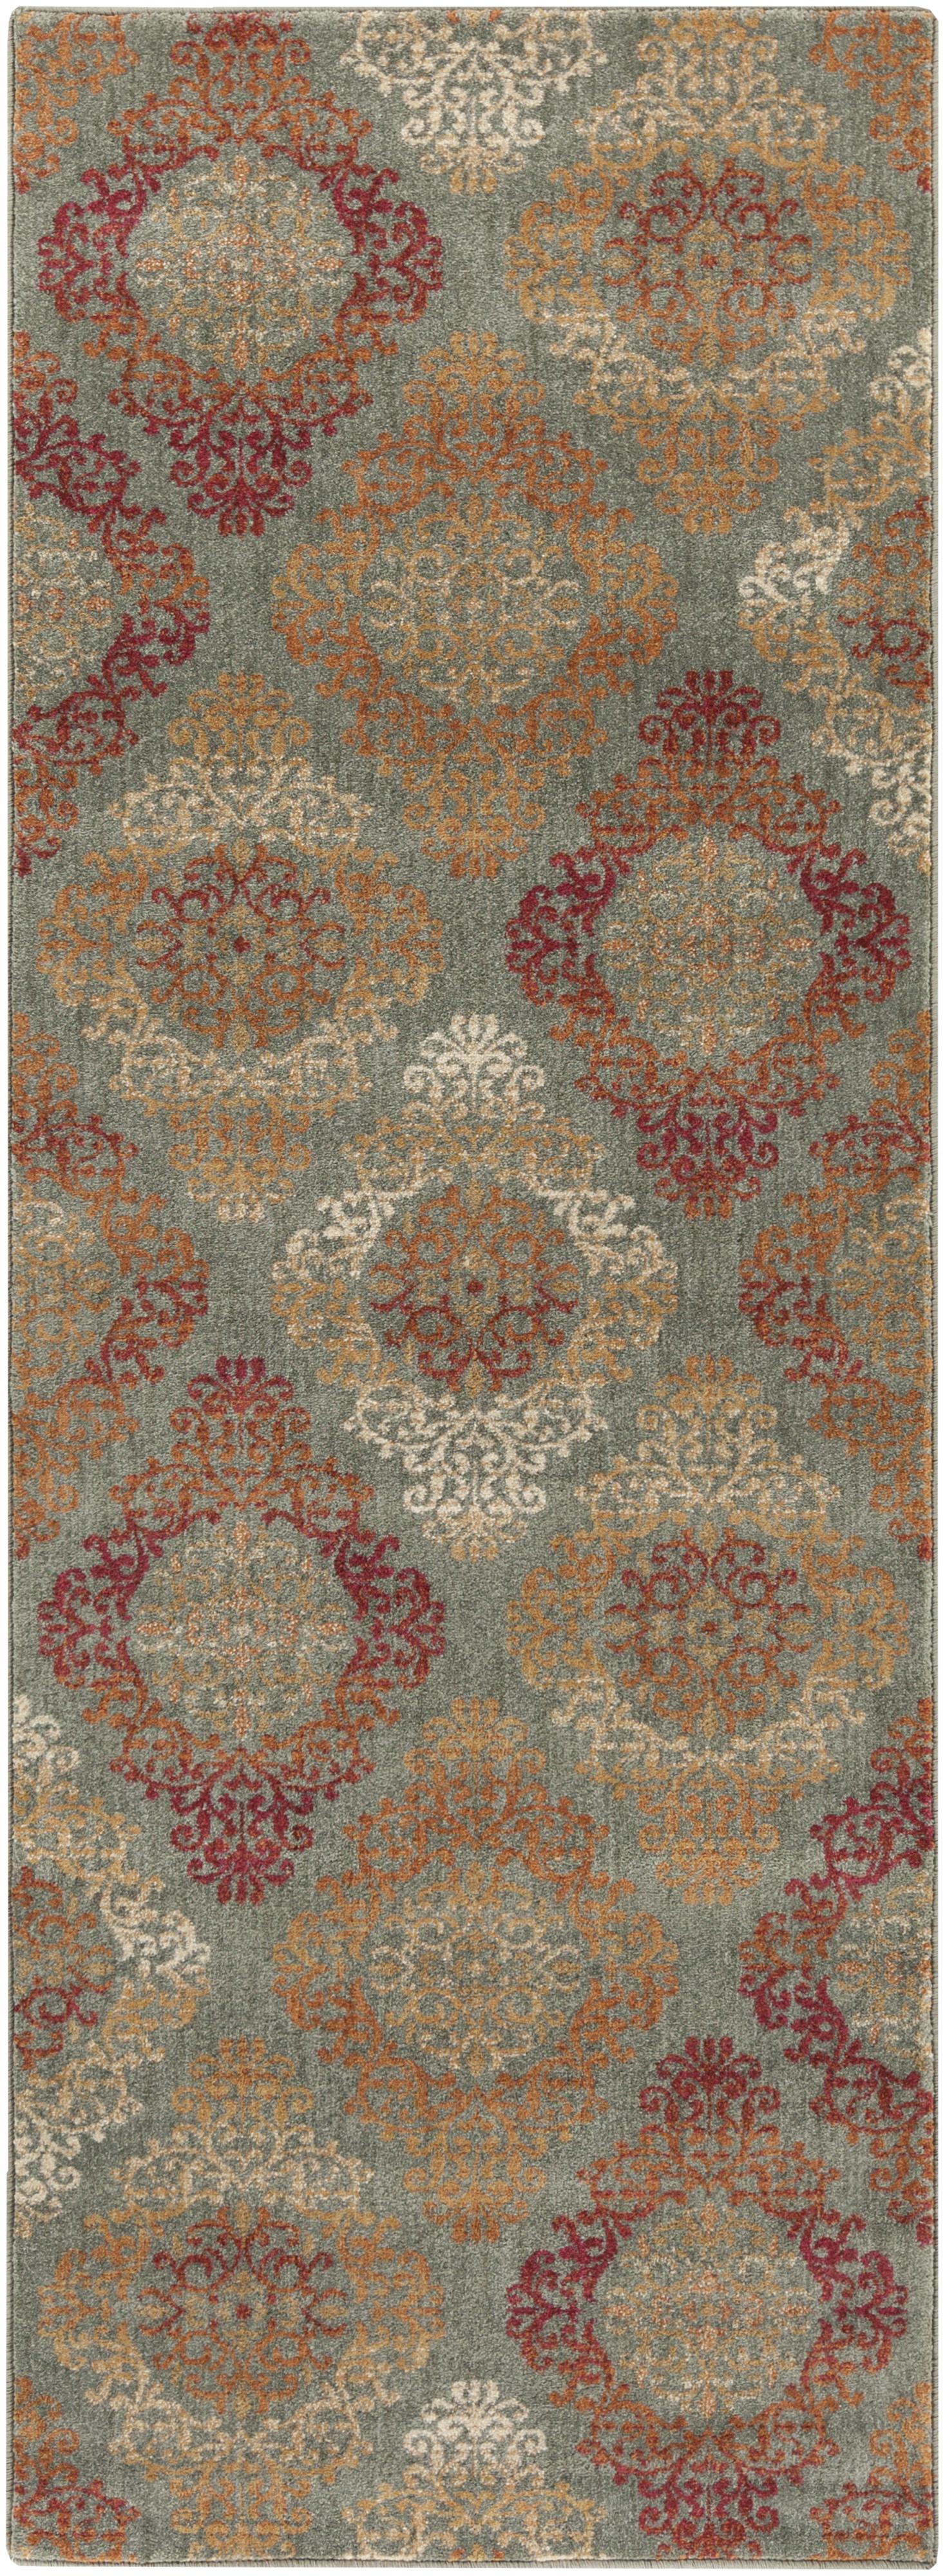 "Surya Rugs Arabesque 2'7"" x 7'3"" - Item Number: ABS3022-2773"